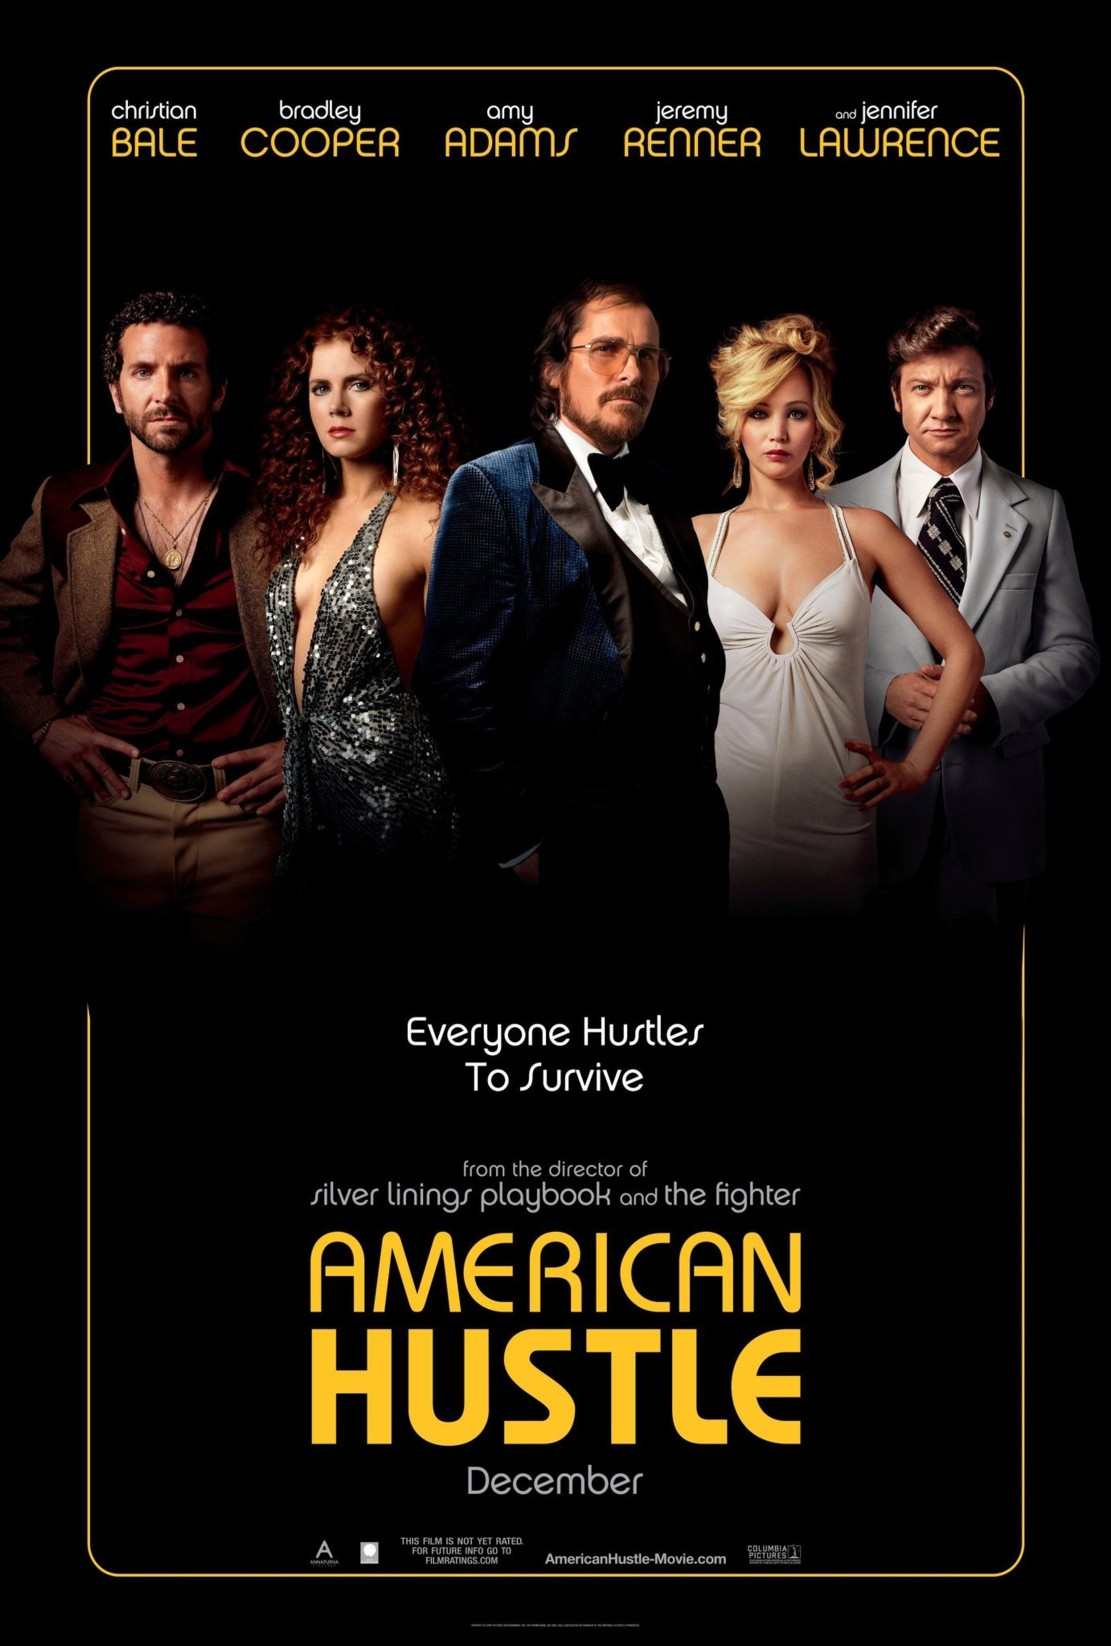 american hustle mini movie poster amy adams christian